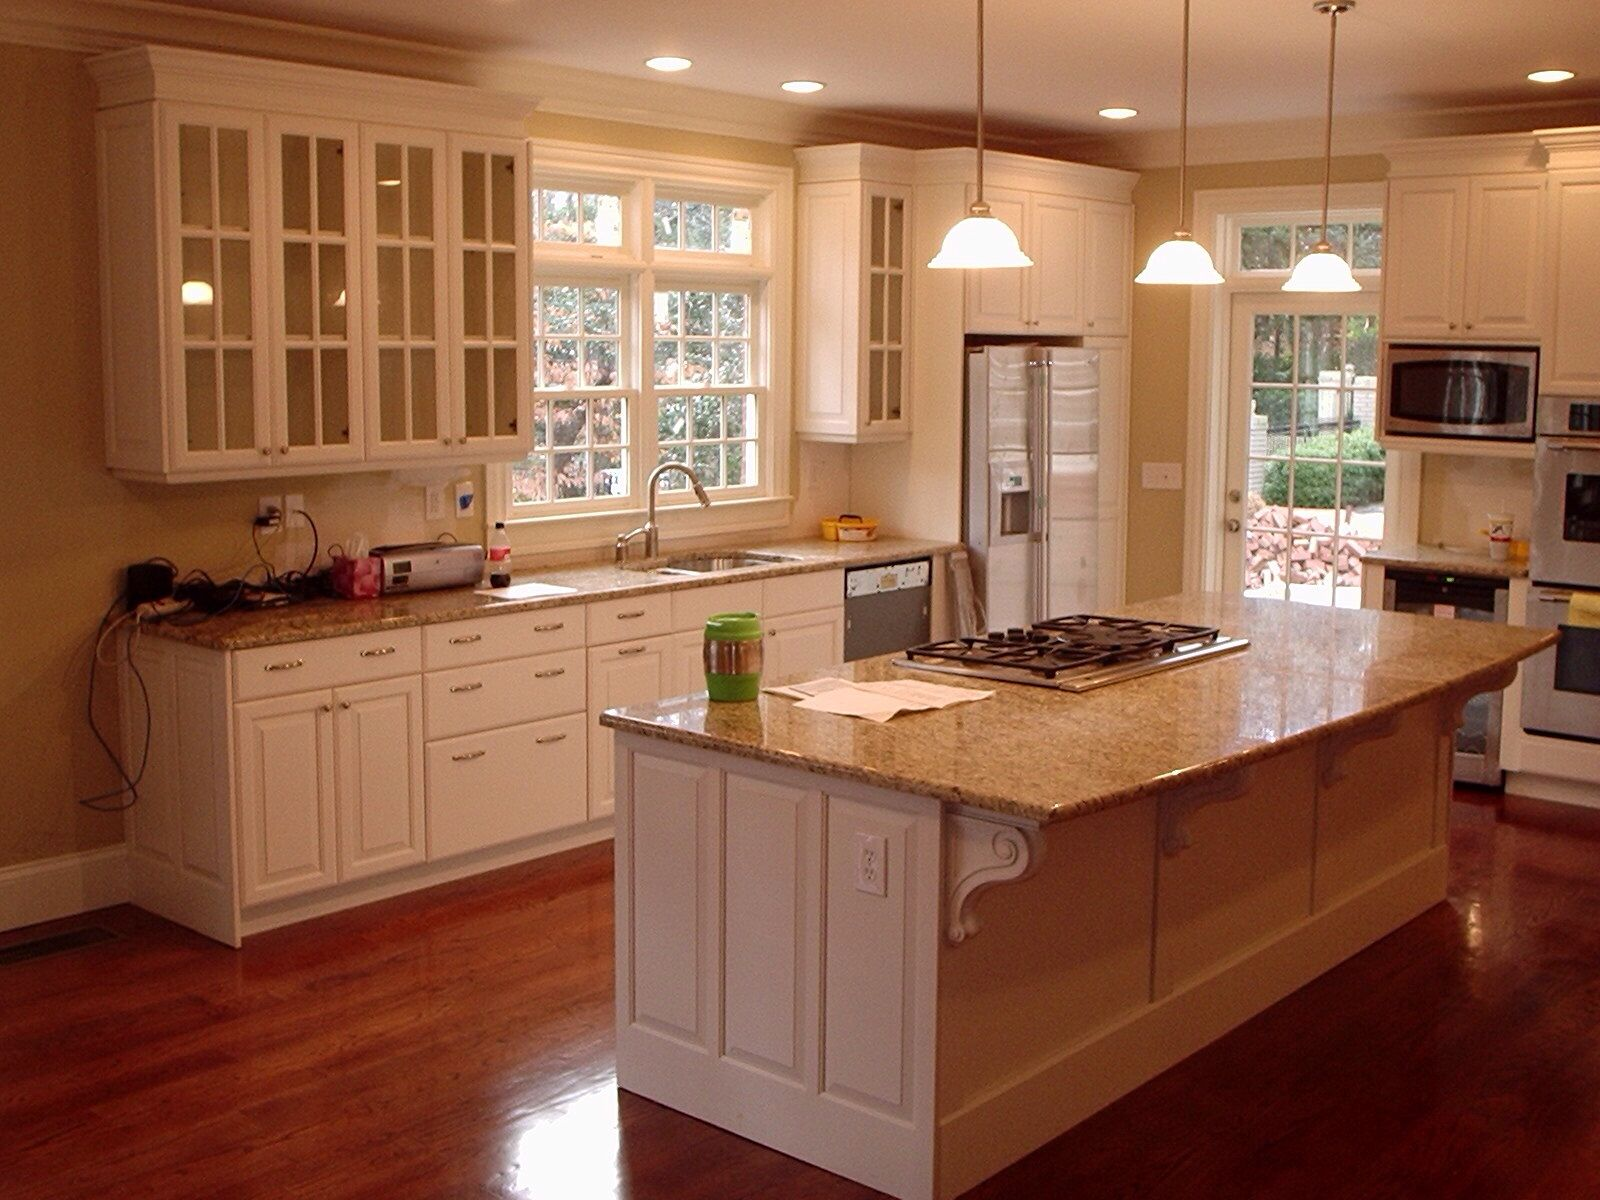 Kitchen ideas Ideas for the House Pinterest